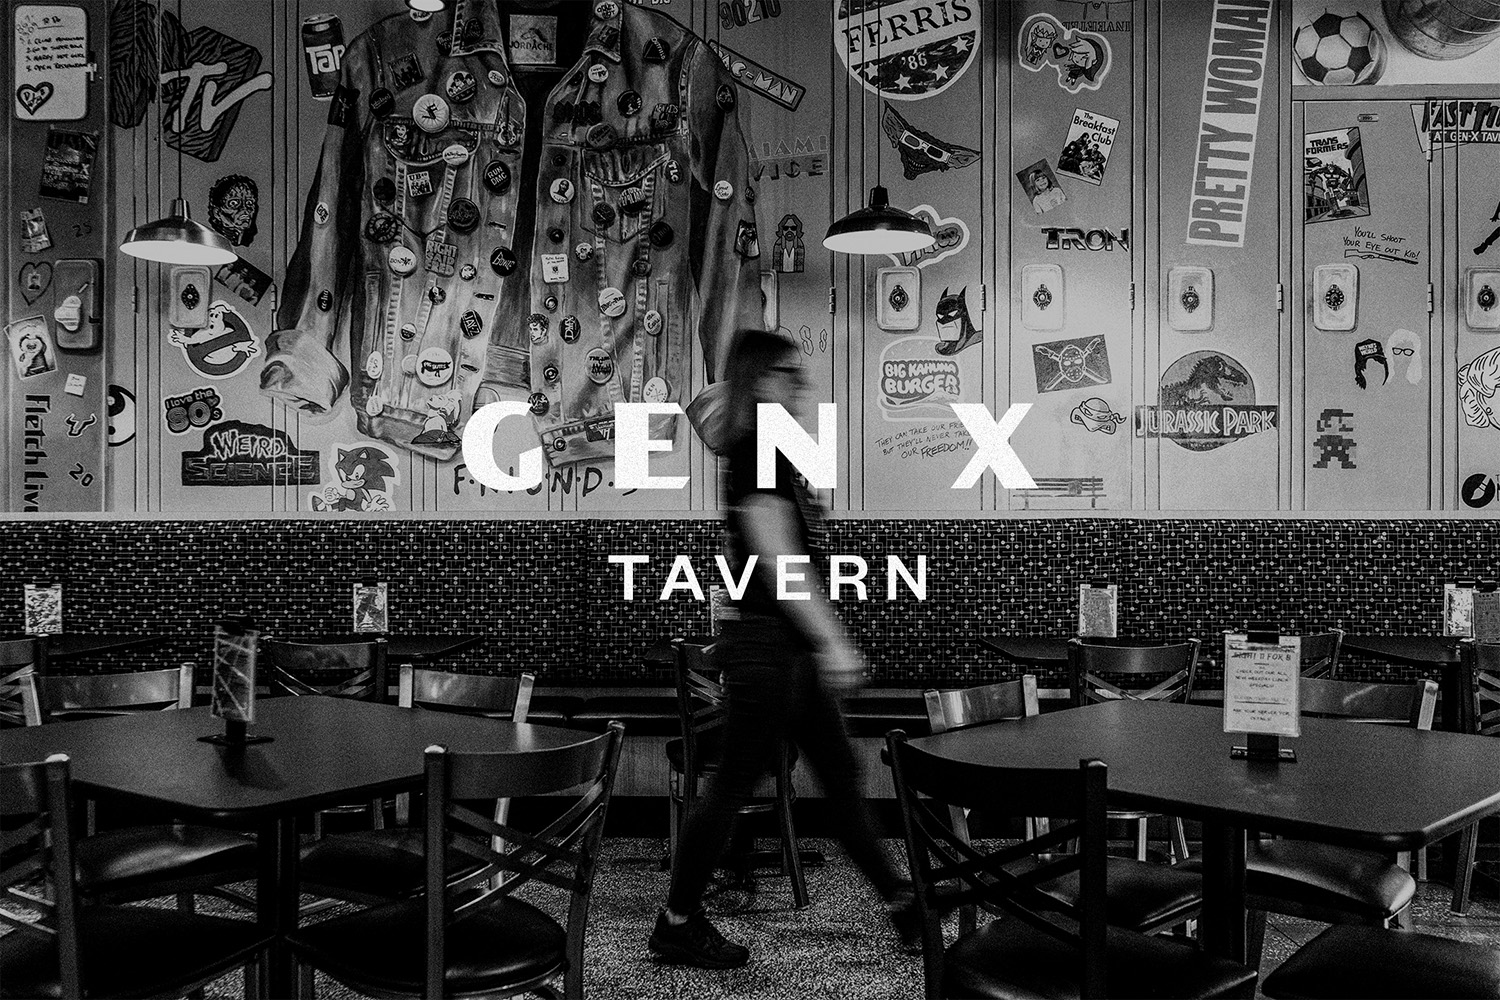 Hype Group Designs Throwback Brand for Tampa's Gen X Tavern